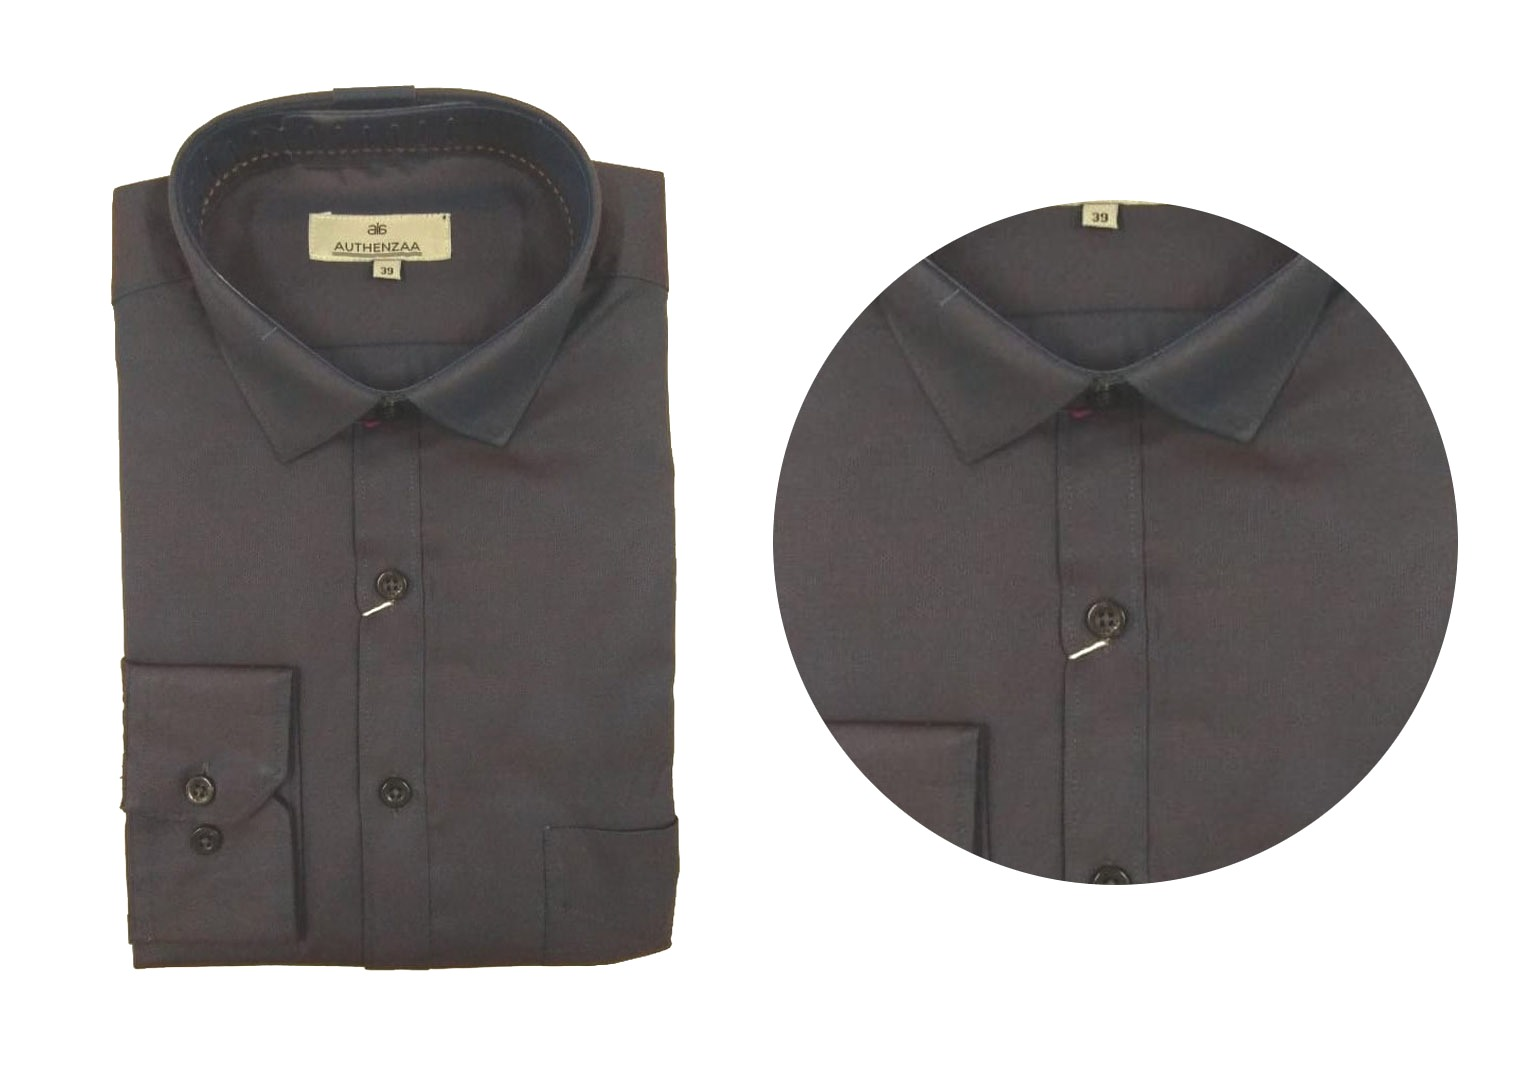 BT SEP 03 2019-CHARCOAL MEN'S FORMAL SHIRT